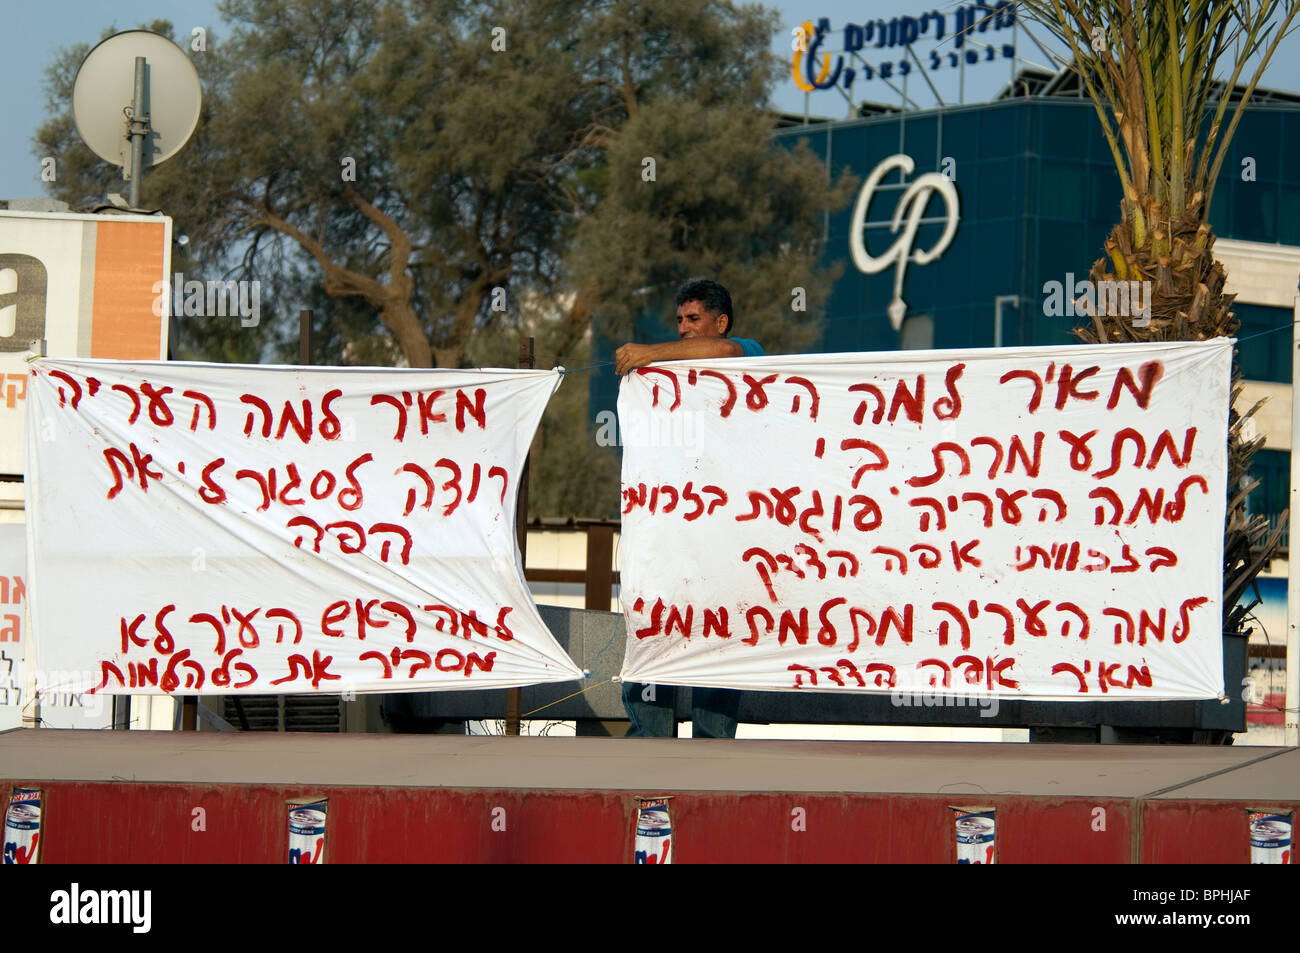 Protest placards in Hebrew - Stock Image